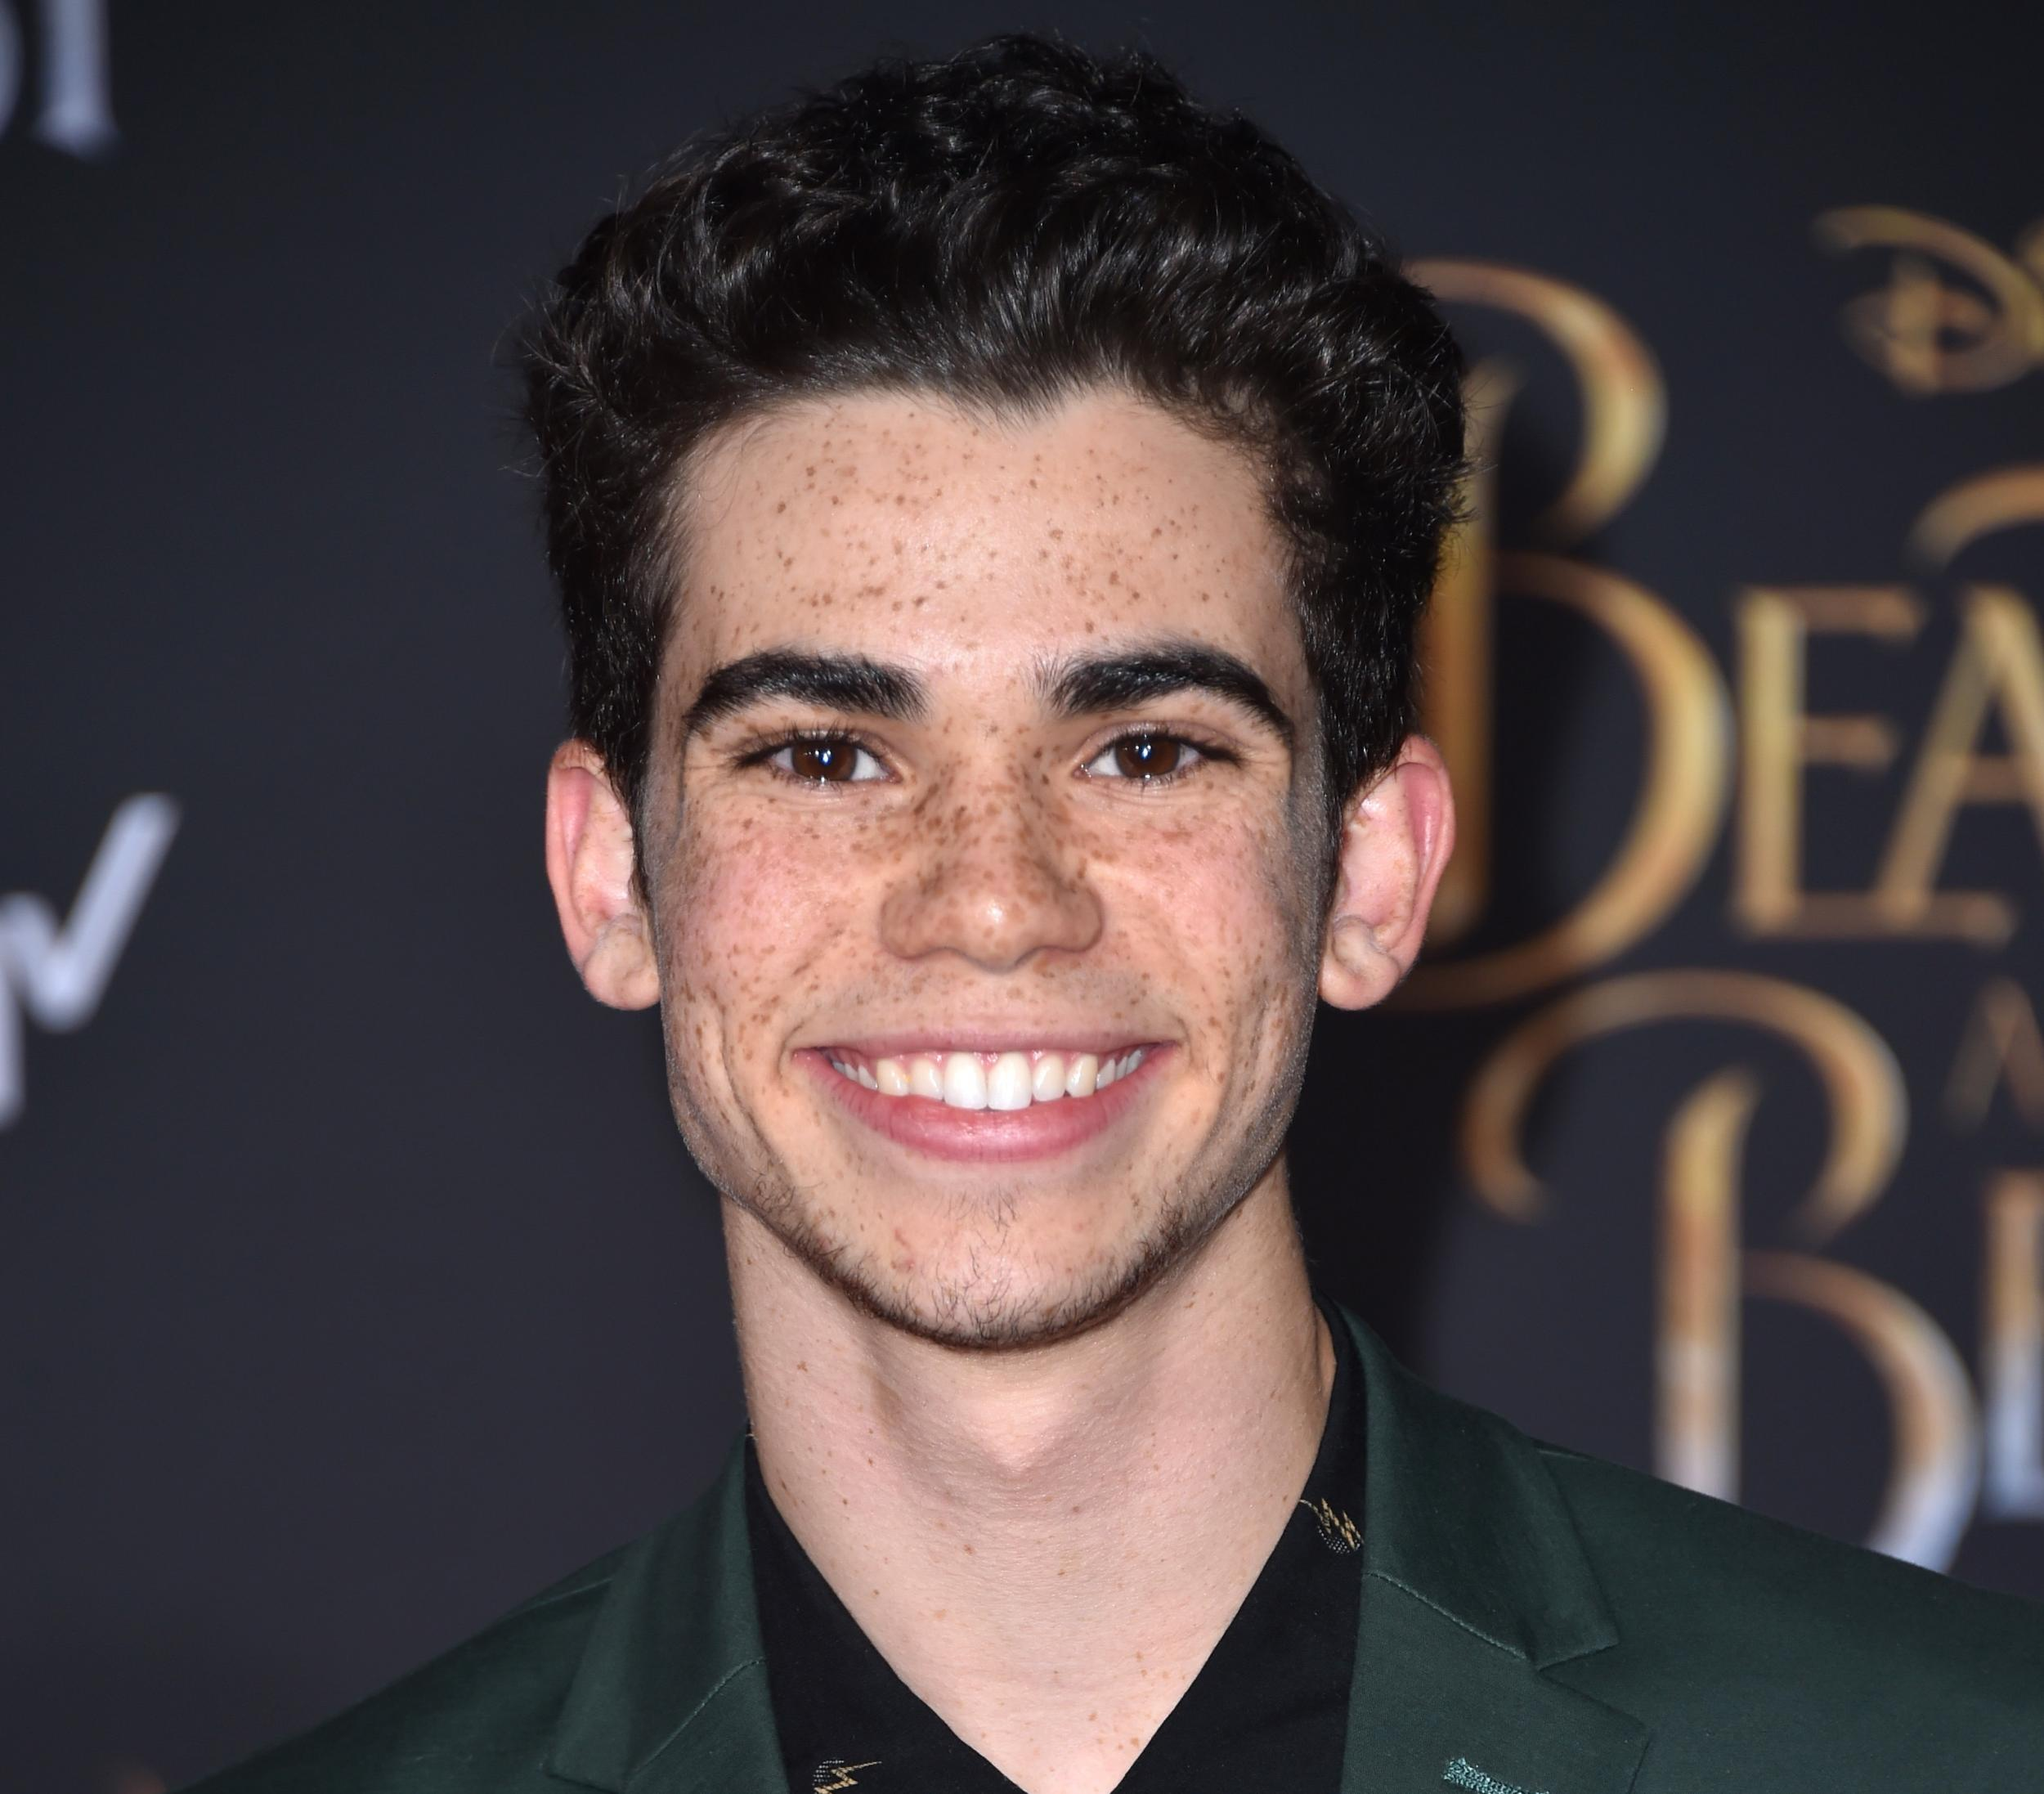 Cameron Boyce death: Tributes pour in after Disney Channel star dies aged 20